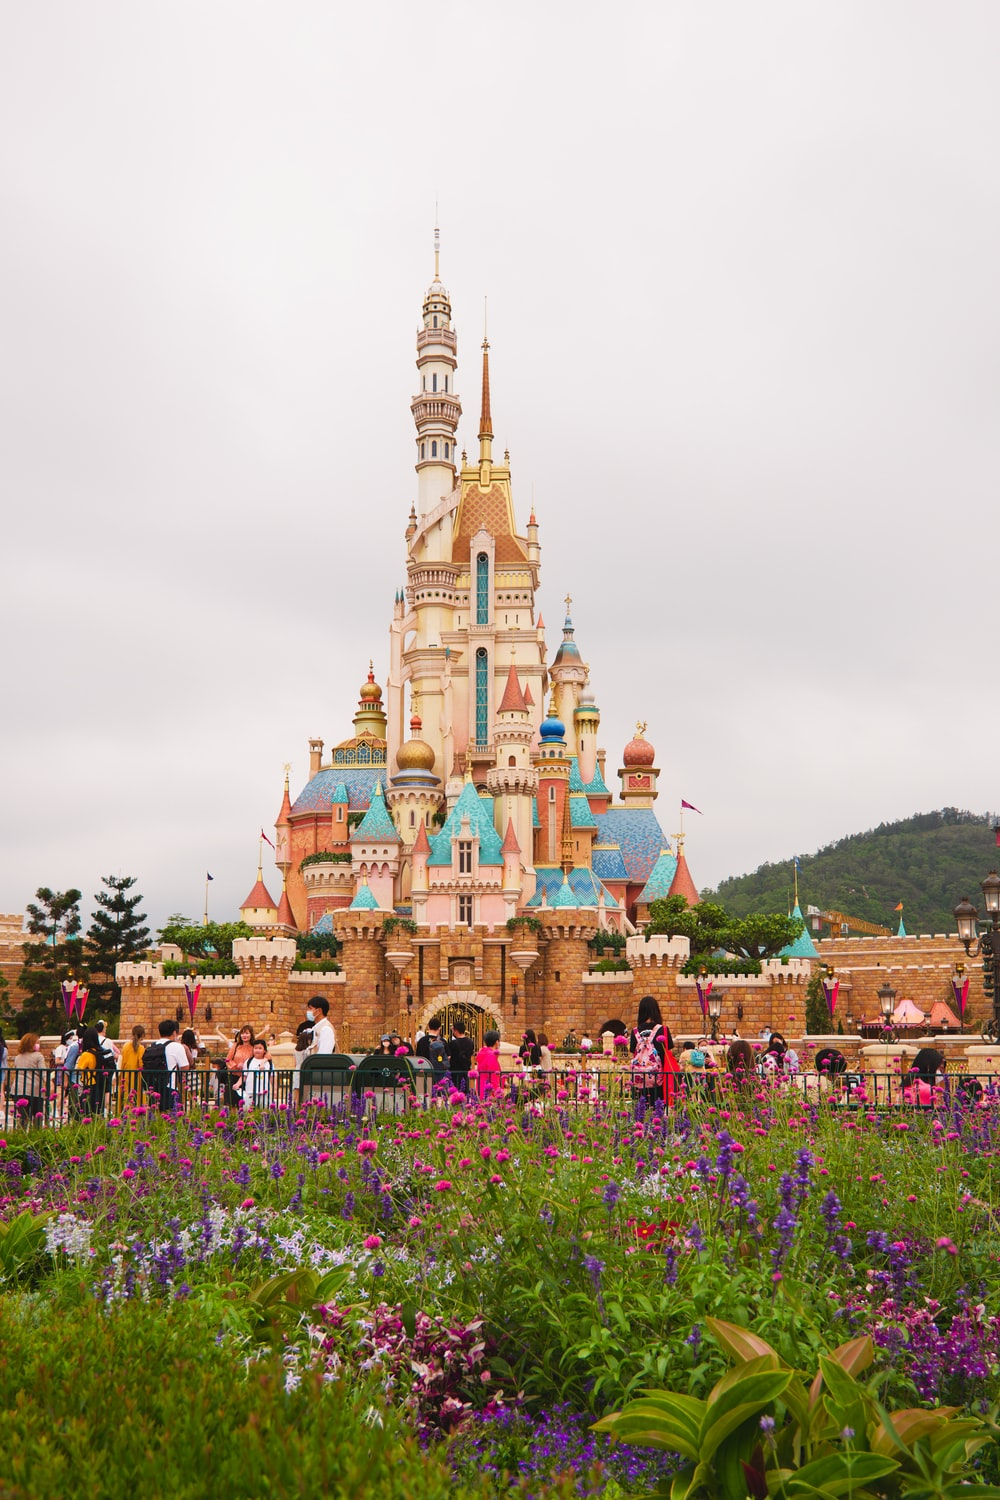 brown and green castle surrounded by green trees under white clouds during daytime